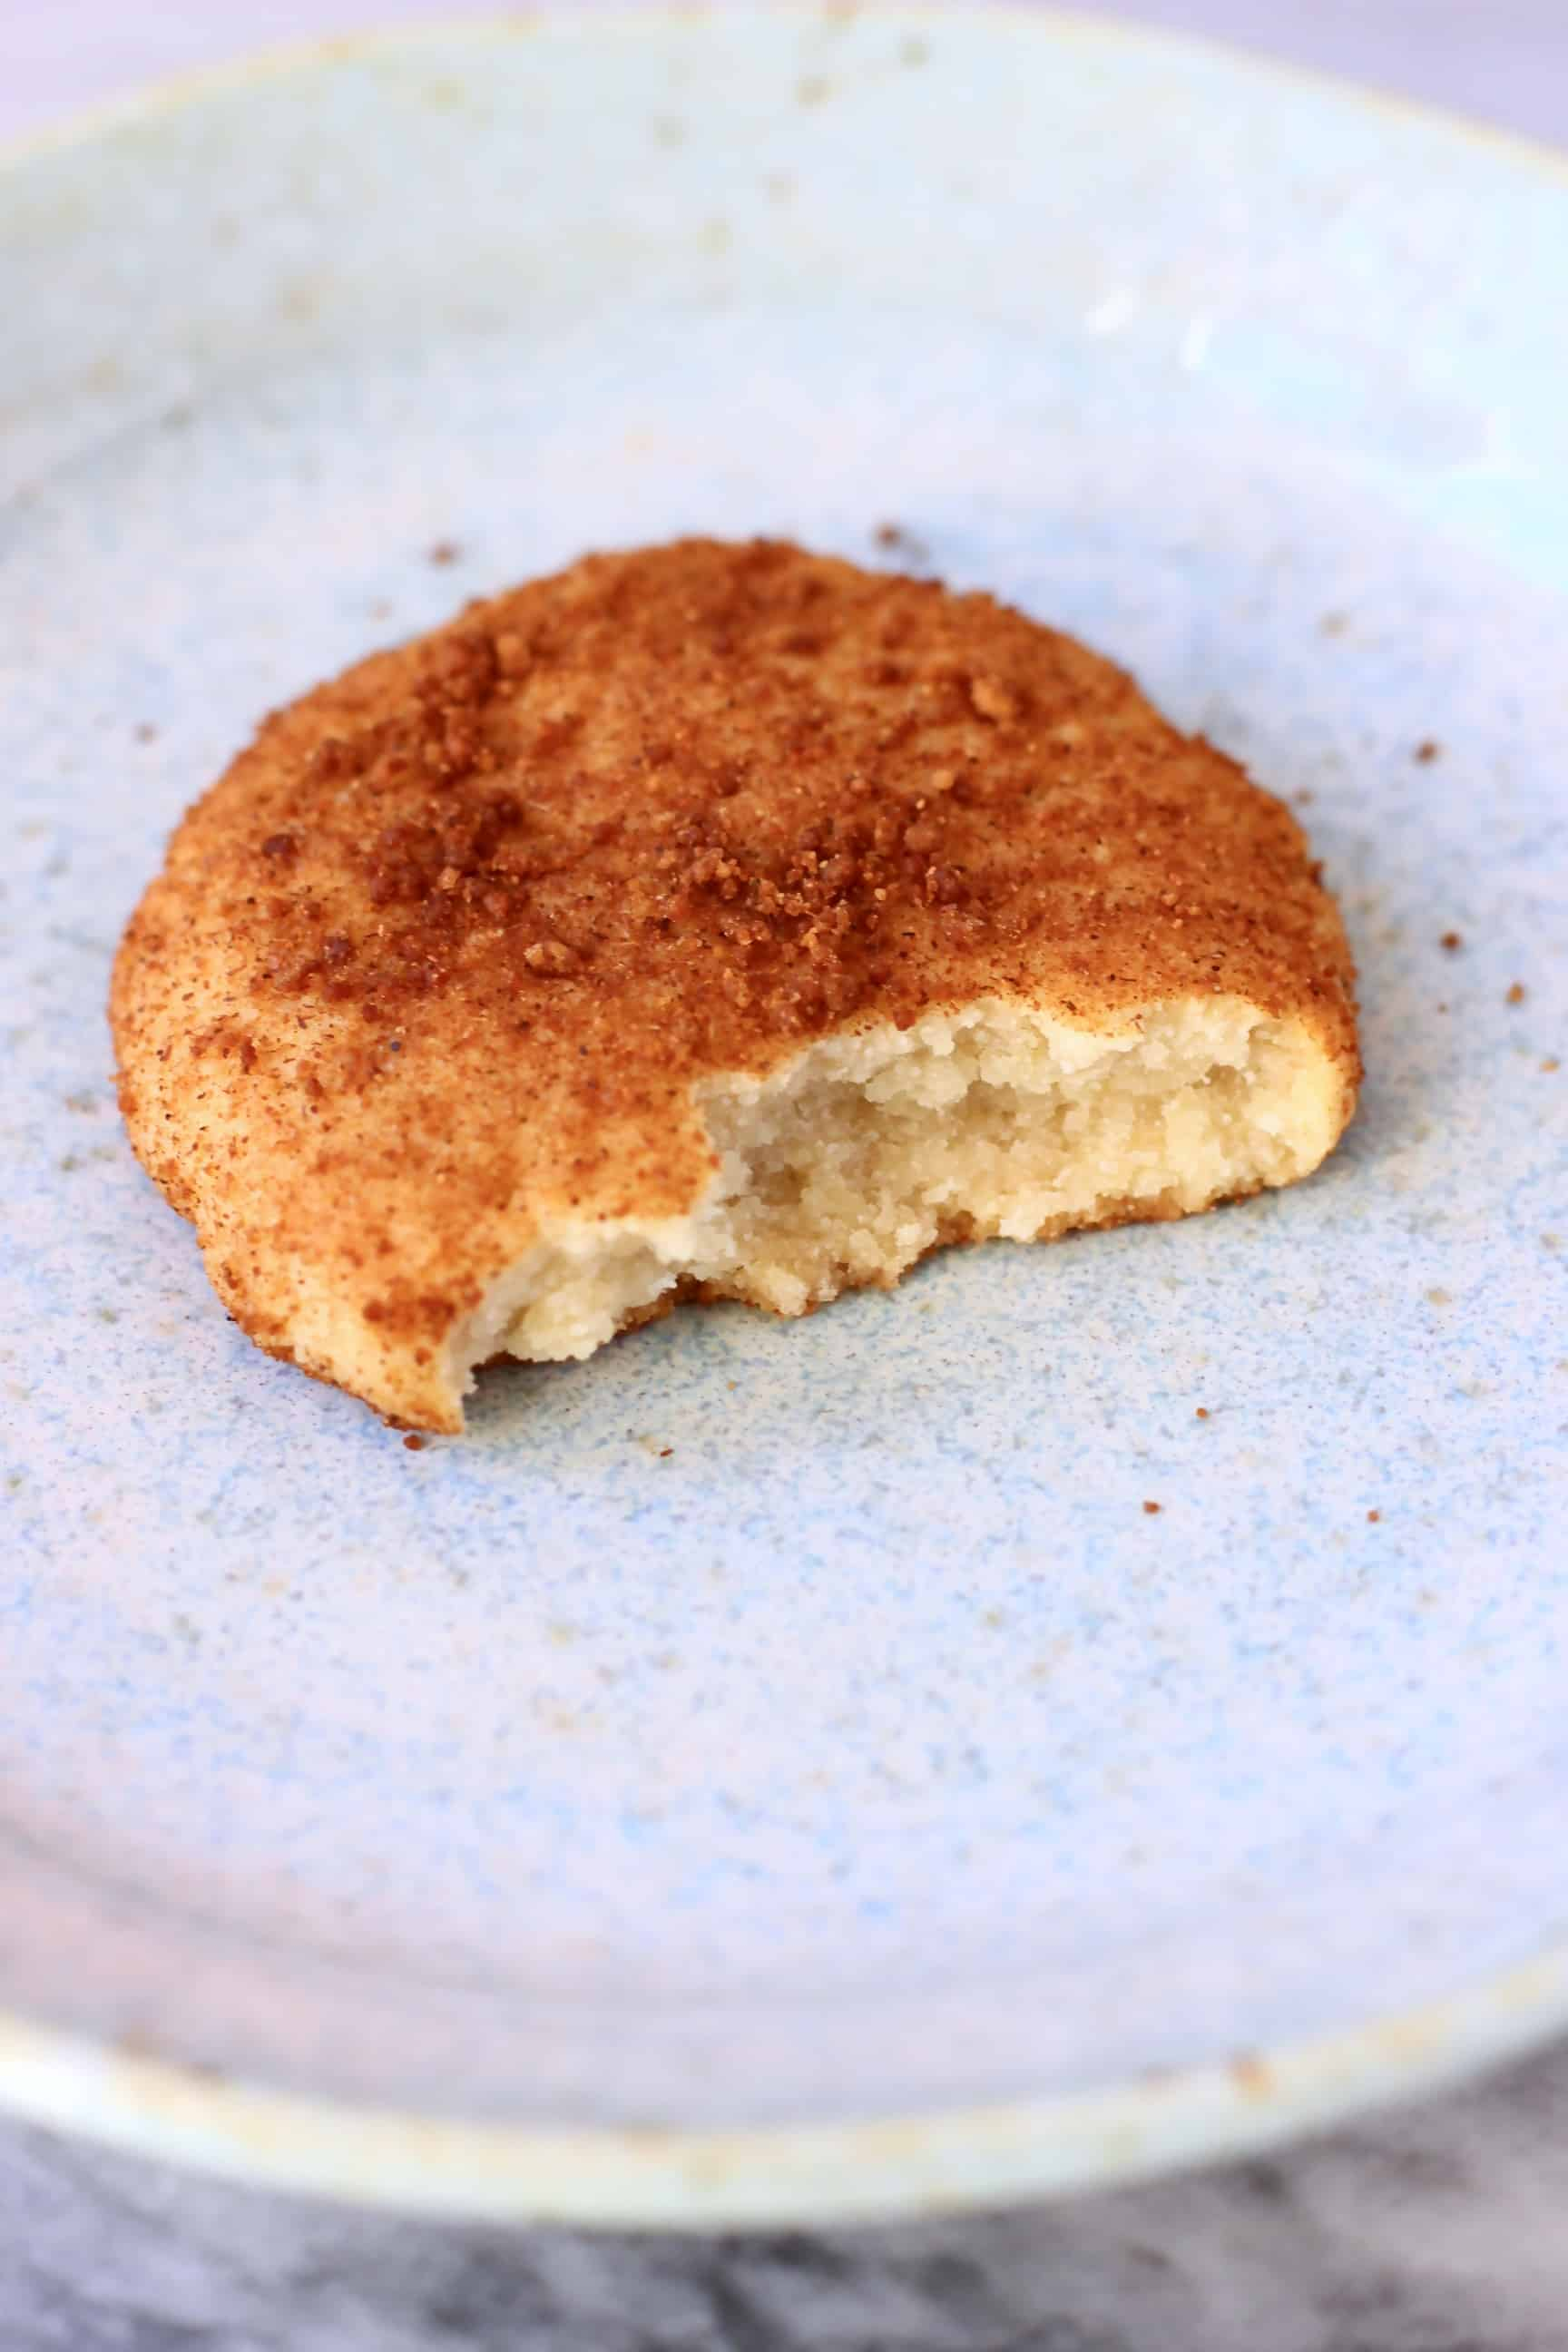 A gluten-free vegan snickerdoodle cookie with a bite taken out of it on a plate